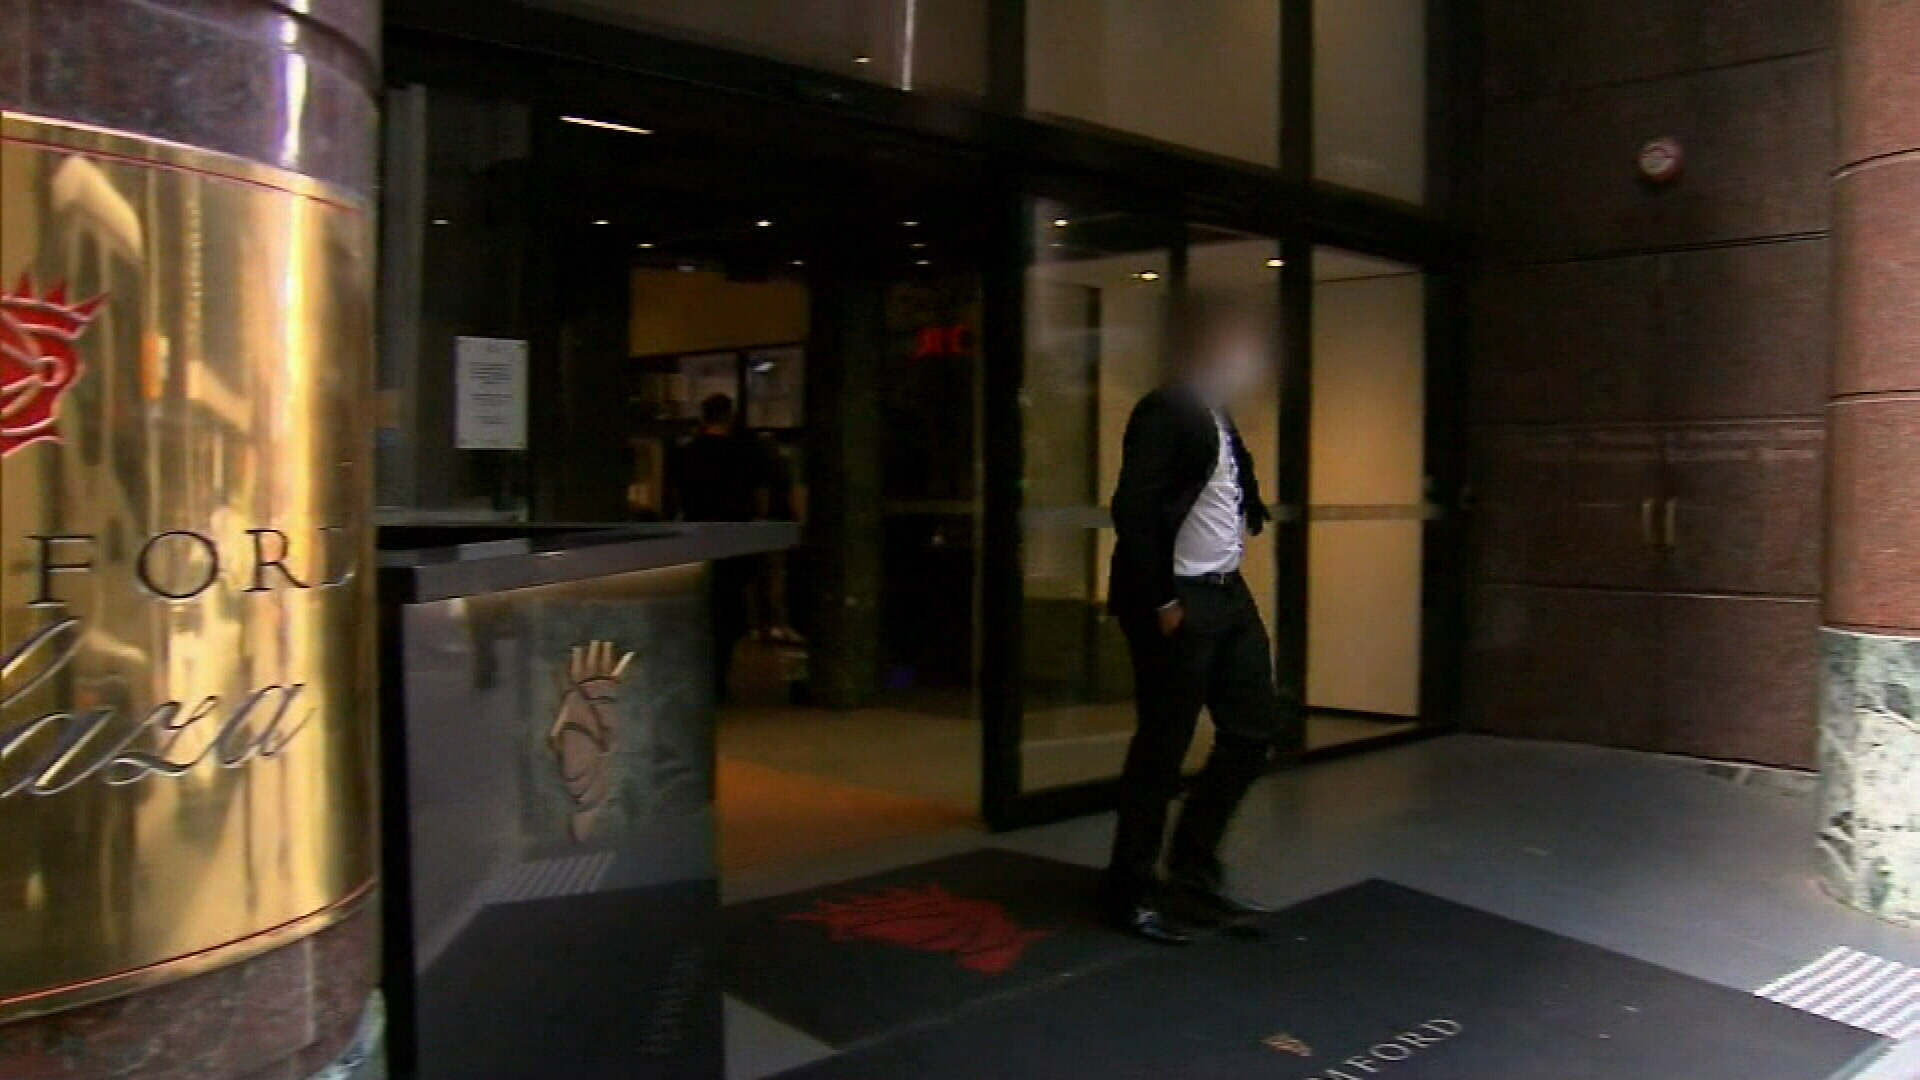 Victorian Jobs Minister lays blame for bungled hotel quarantine on DHHS